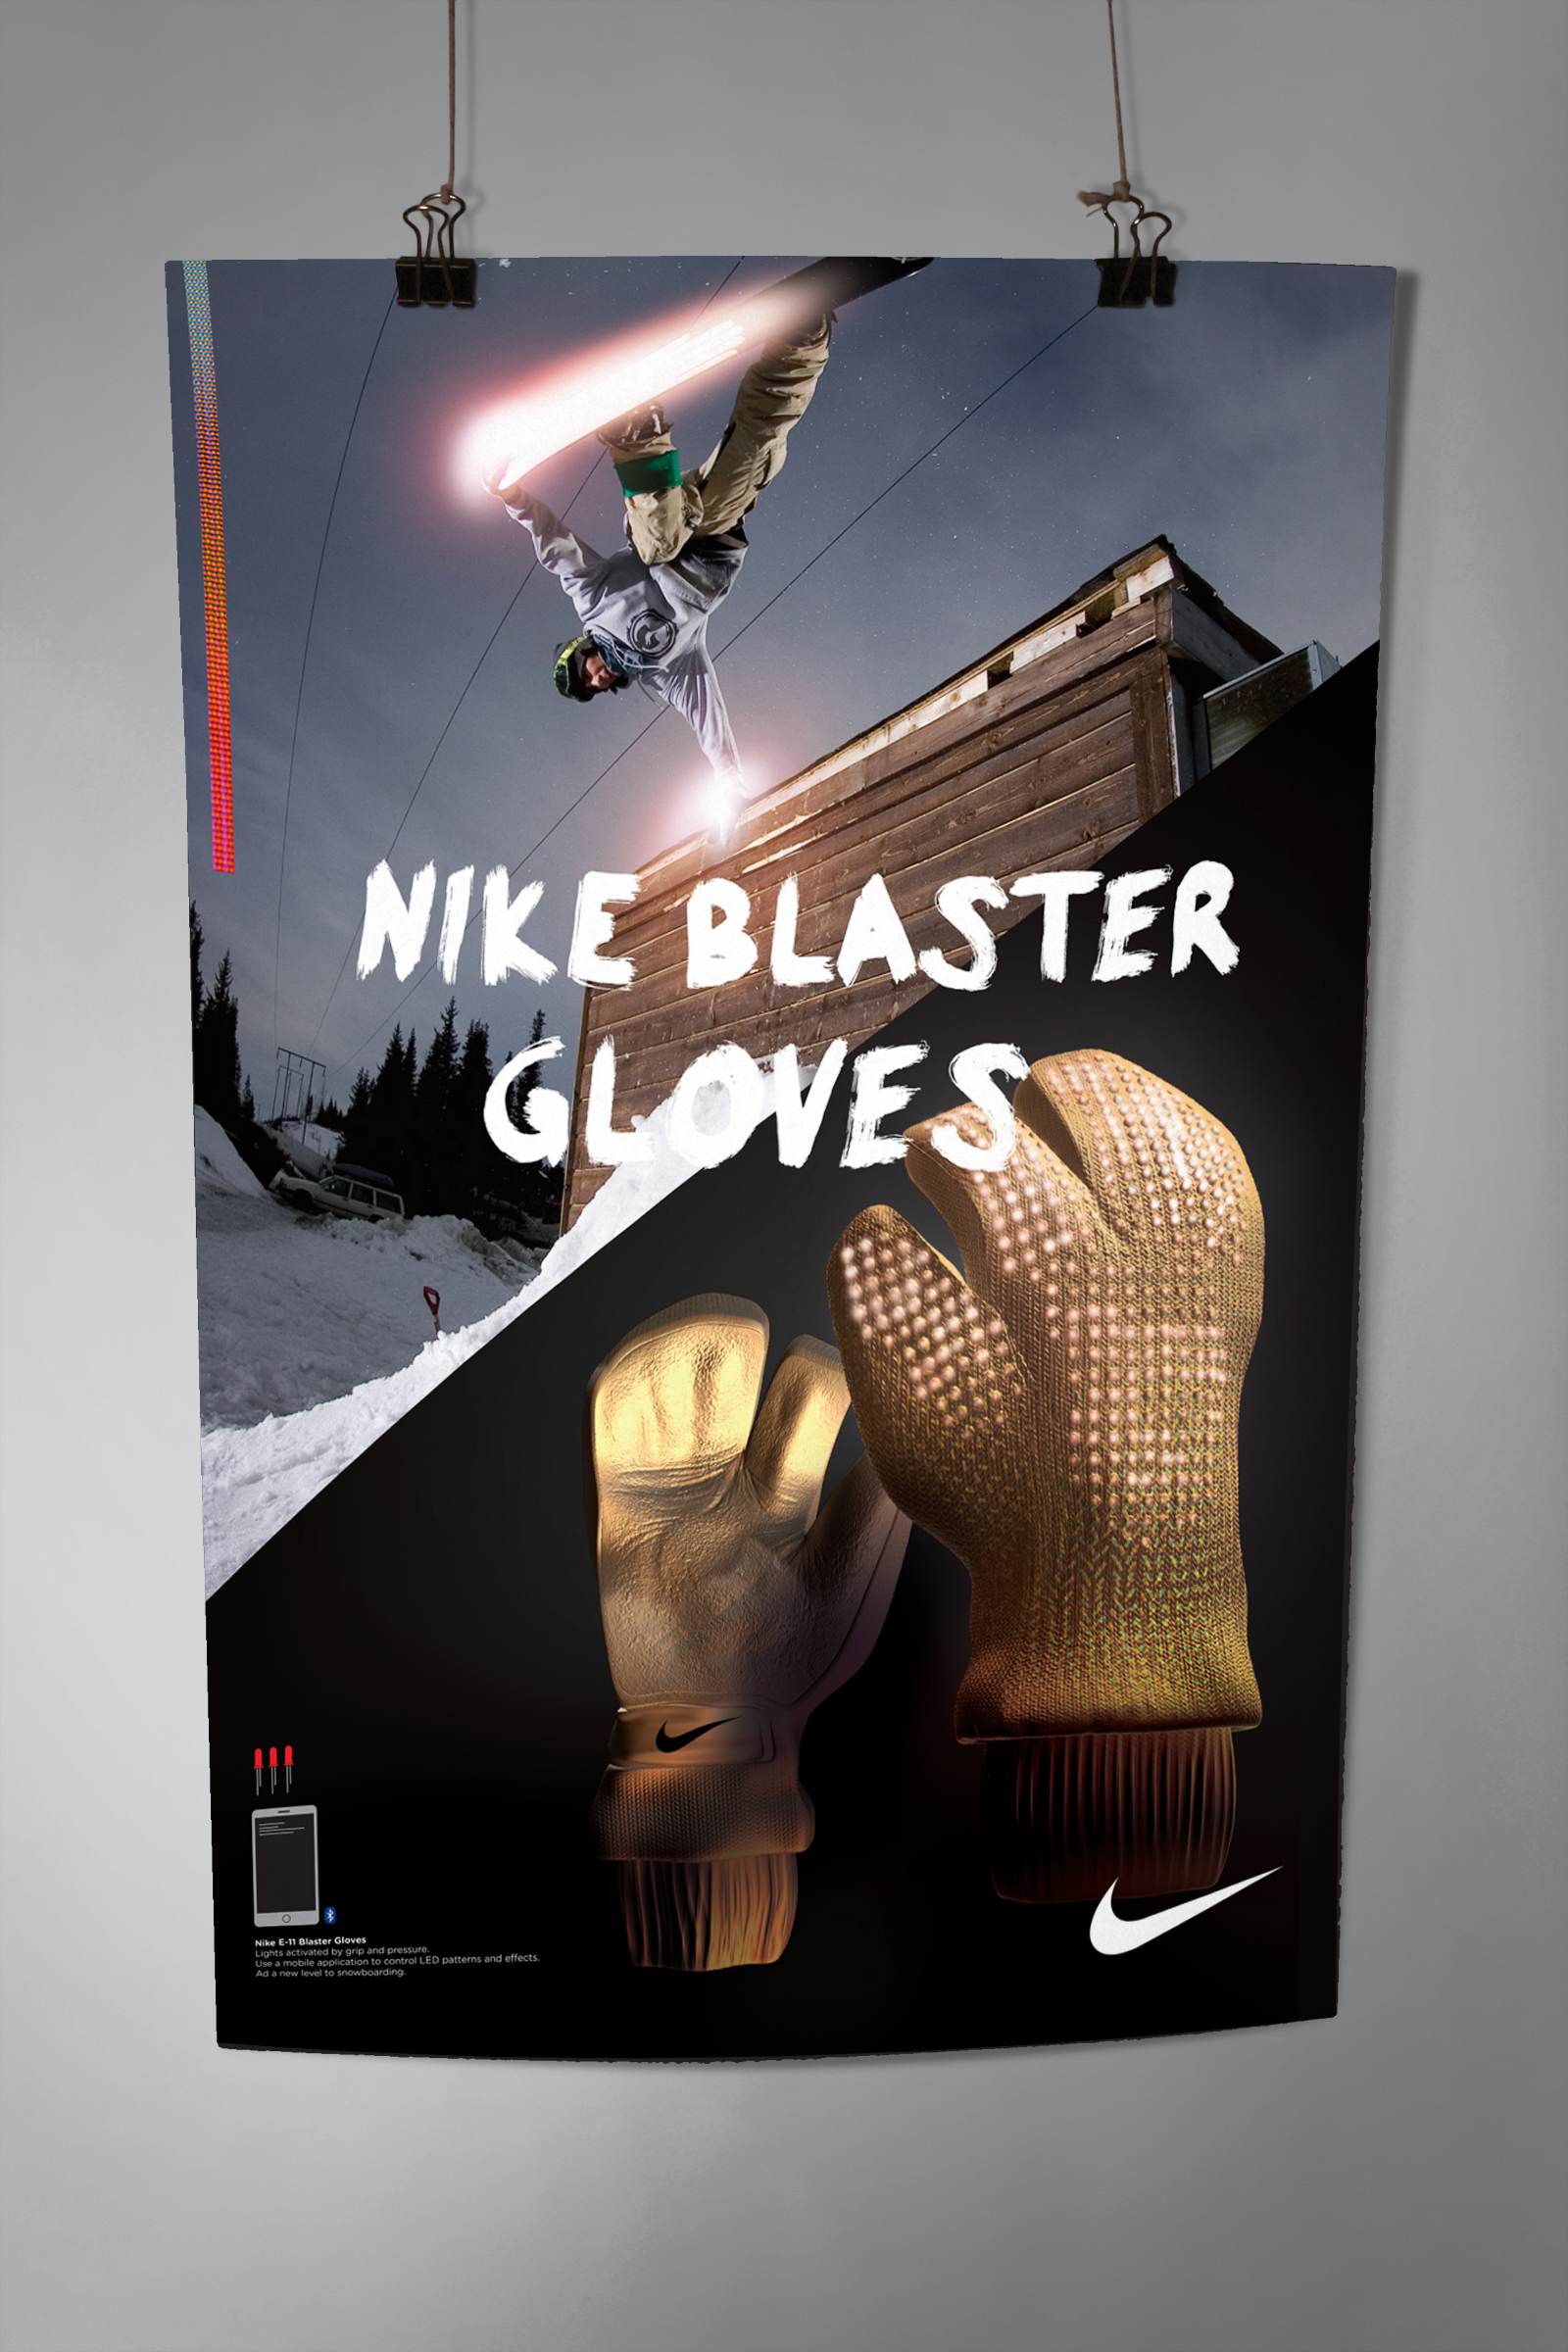 NIke E-11 Blaster gloves with lights activated by a grip or pressure. Programmable LEDs that wirelessly can be updated using an application. Adding a new level to snowboarding.